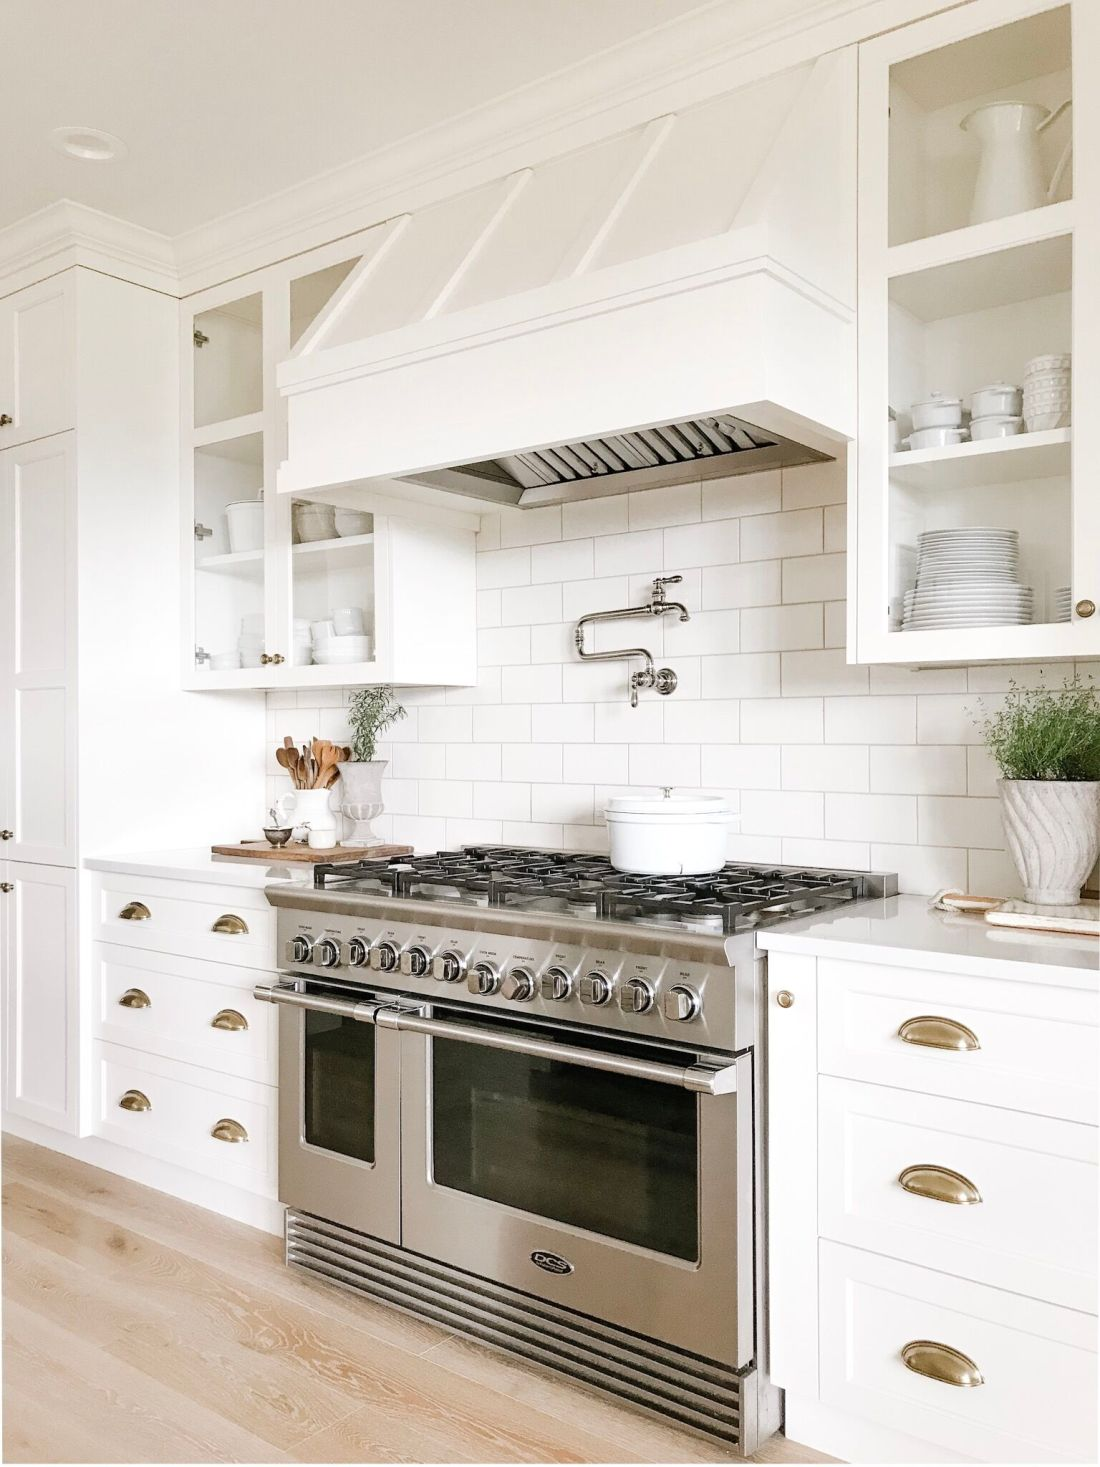 Our Favourite Kitchen Renovation Features